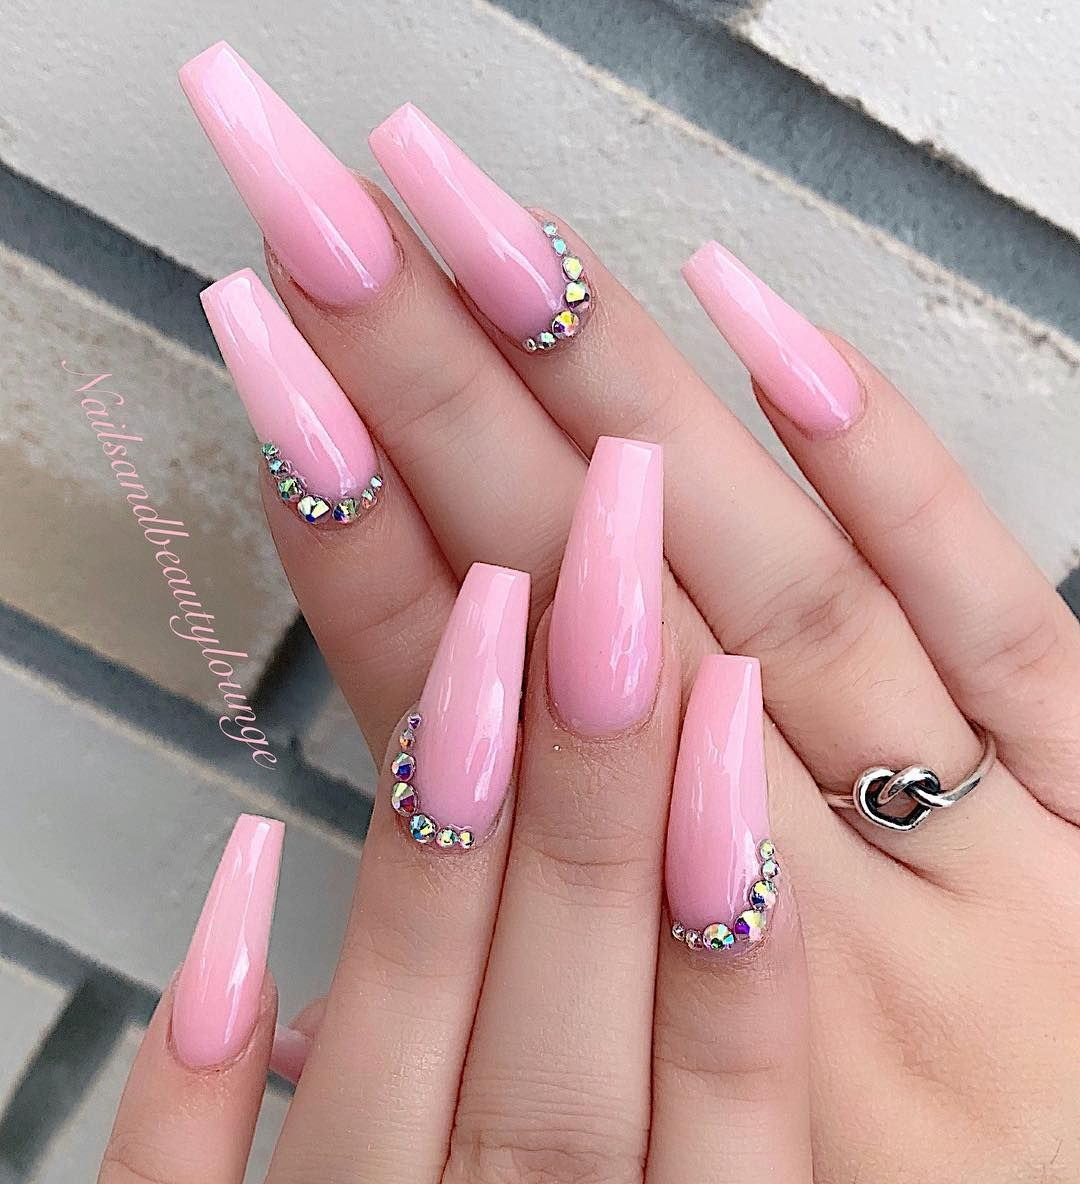 32 Super Cool Pink Nail Designs That Every Girl Will Love Light Pink Acrylic Nails Pink Nail Designs Rhinestone Nails